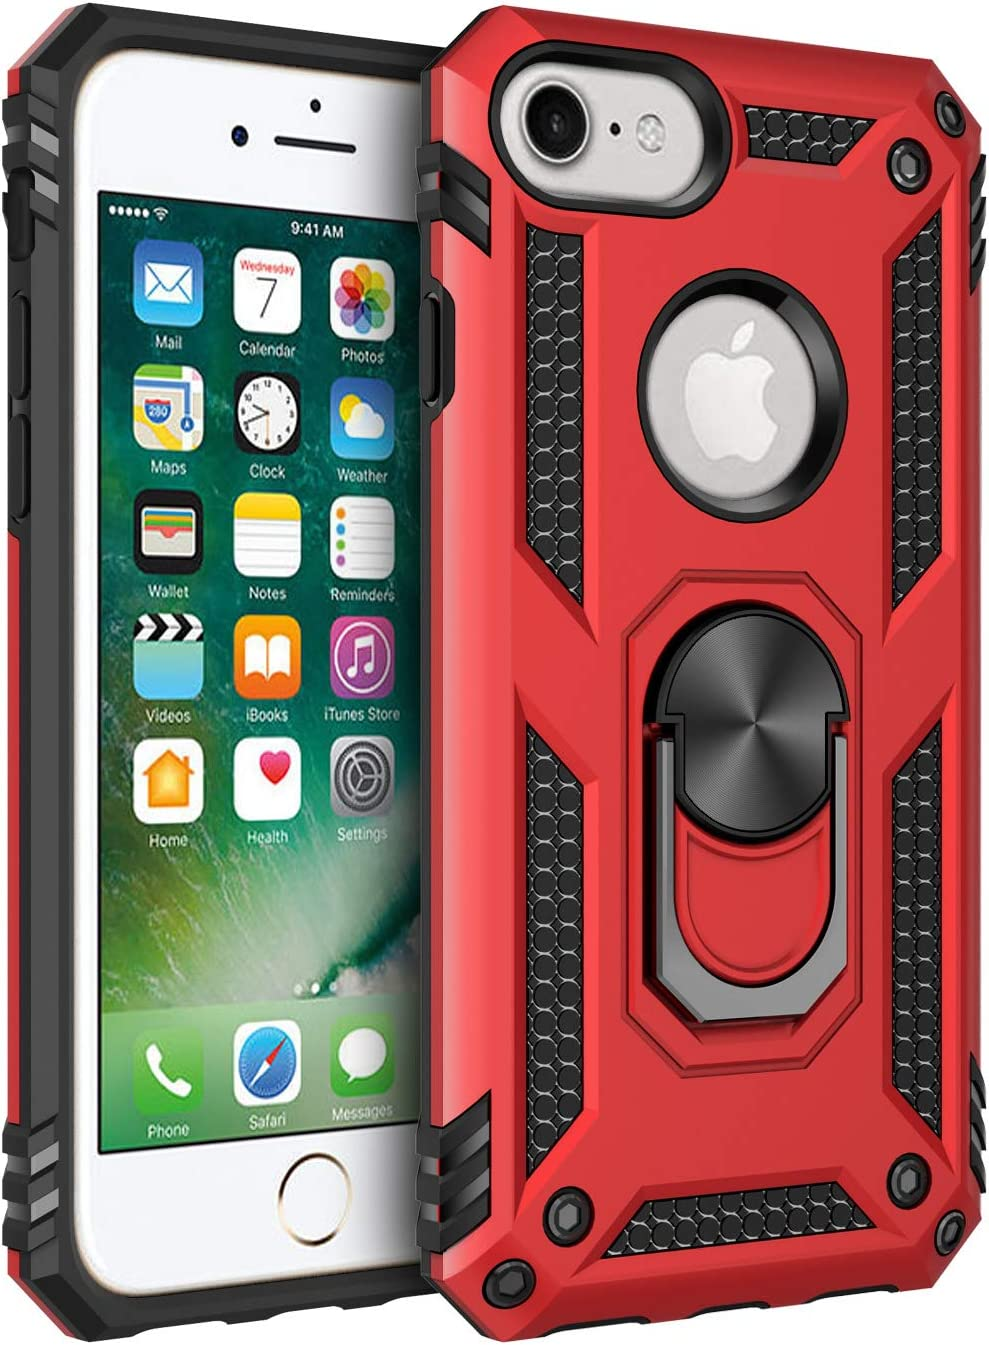 Korecase iPhone 6 6s iPhone 7 iPhone 8 Case, Extreme Protection Military Armor Dual Layer Drop Proof Cover Ring Kickstand Red